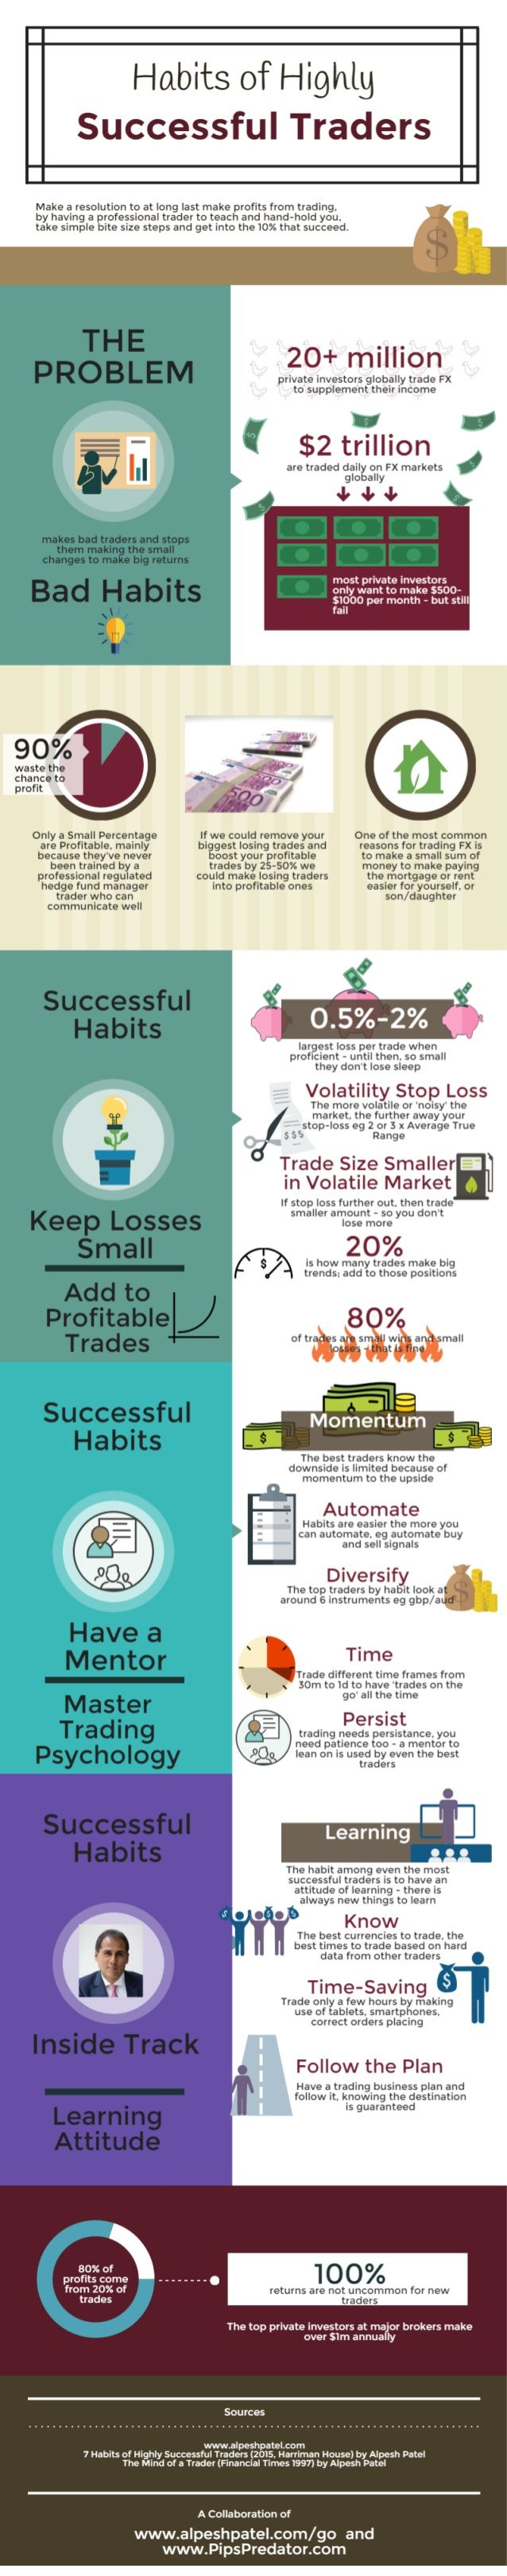 Habits of Highly Successful Traders